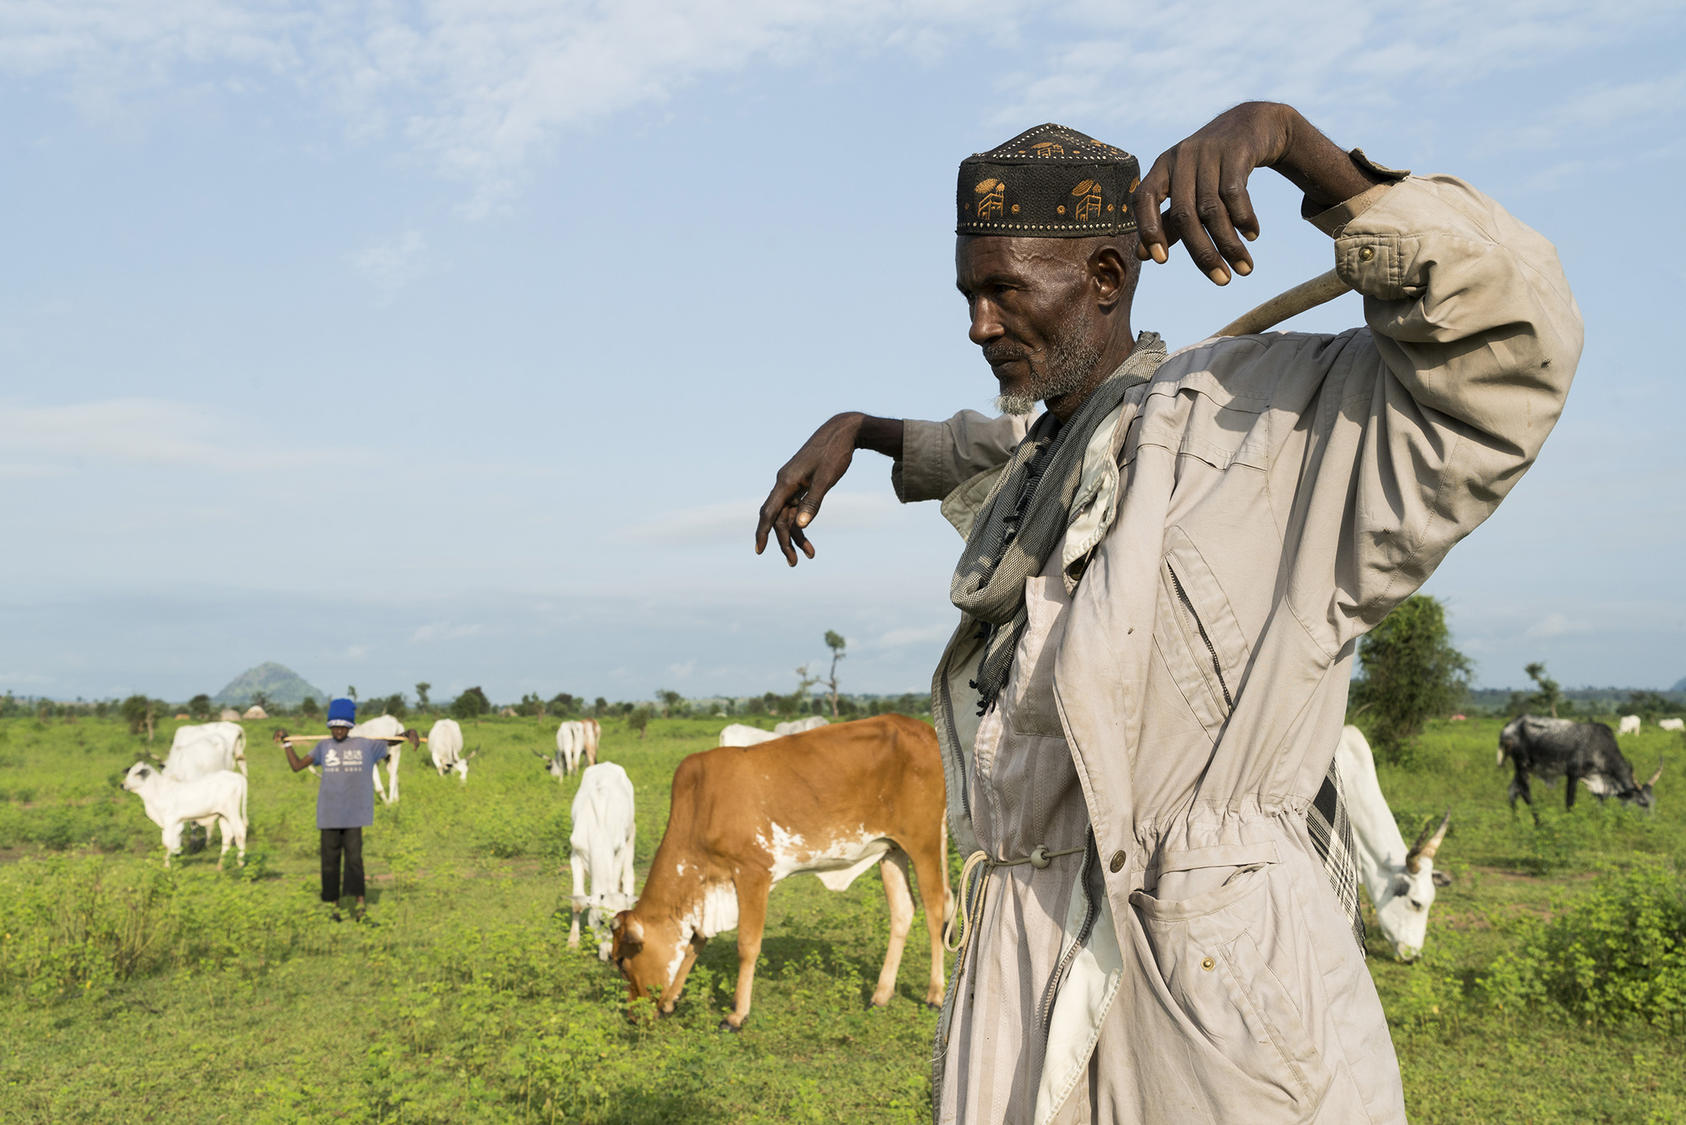 A herder watches his cows graze outside of the village of Koboga, Nigeria, Sept. 4, 2018. Photo courtesy of Adriane Ohanesian/The New York Times.